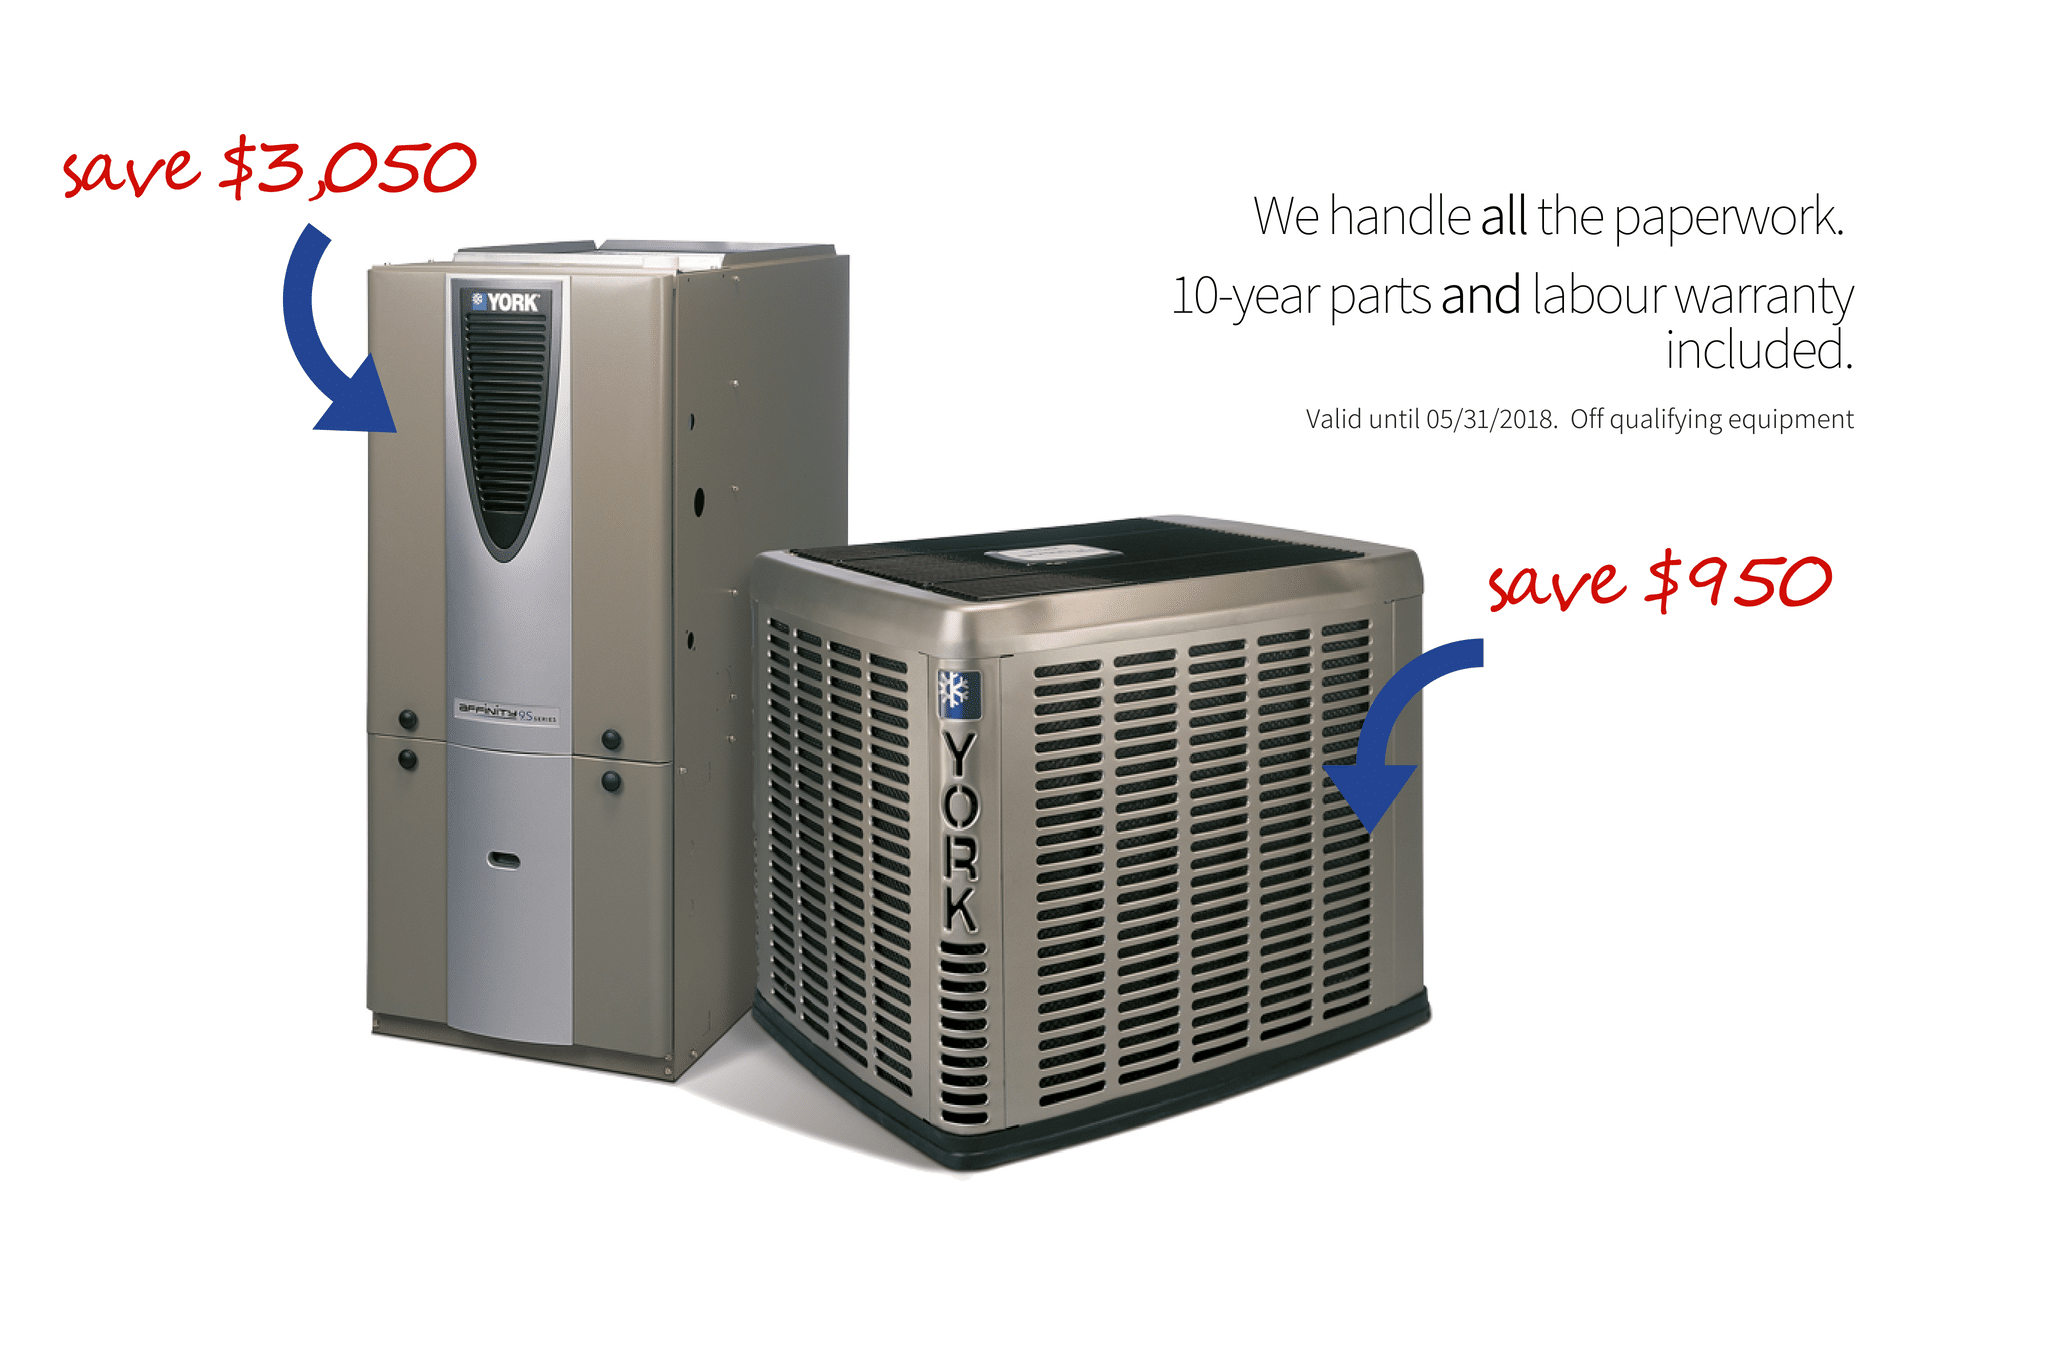 Rebates available on furnaces and air conditioners